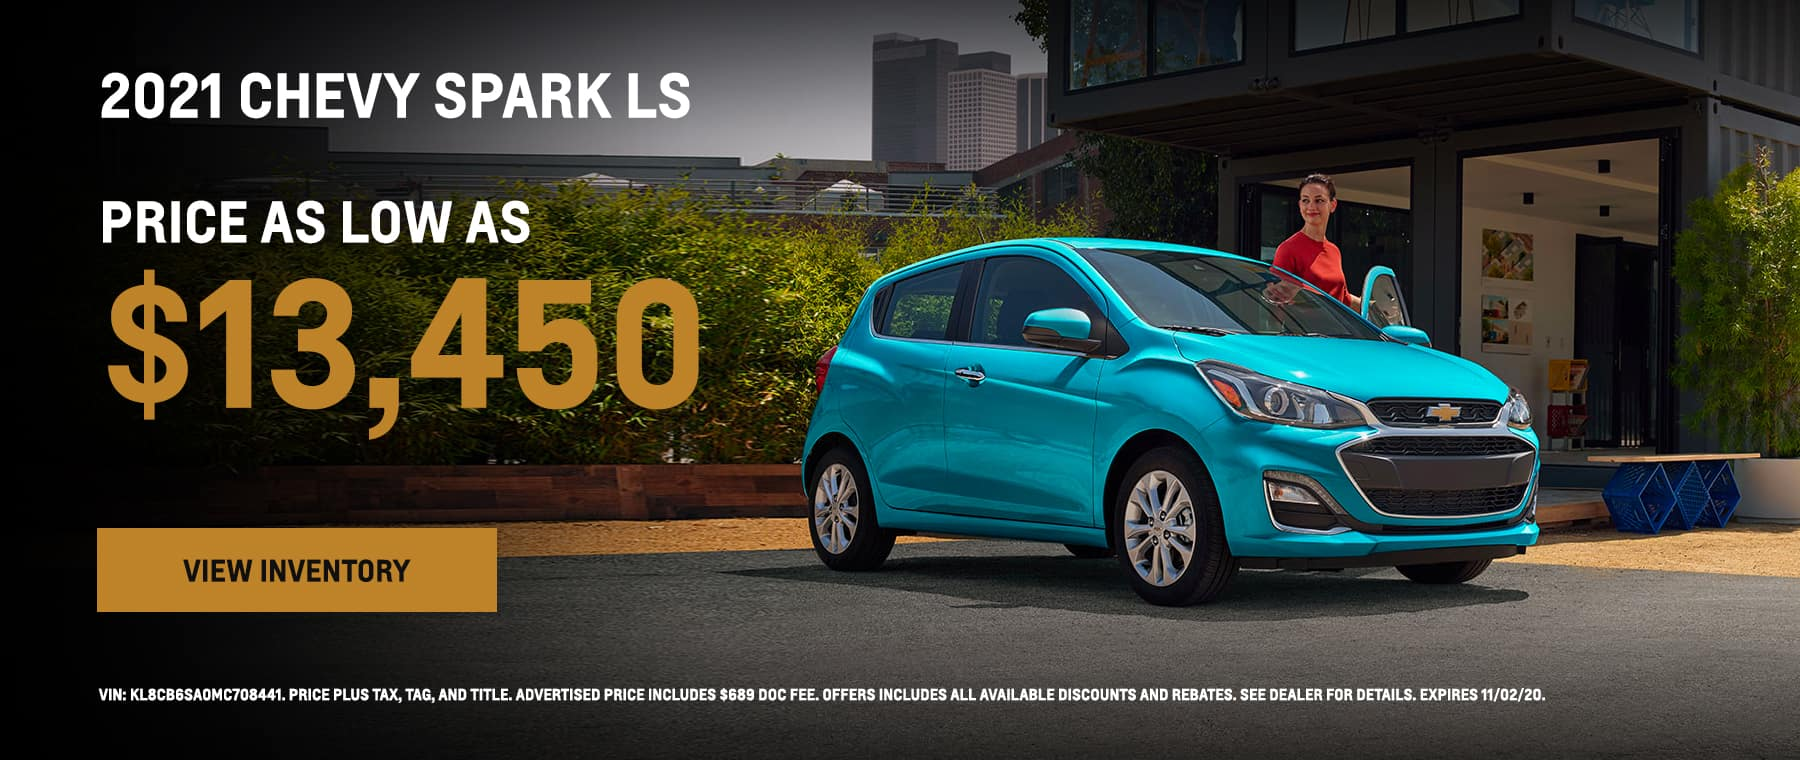 2021 Chevy Spark LS as low as $13,450